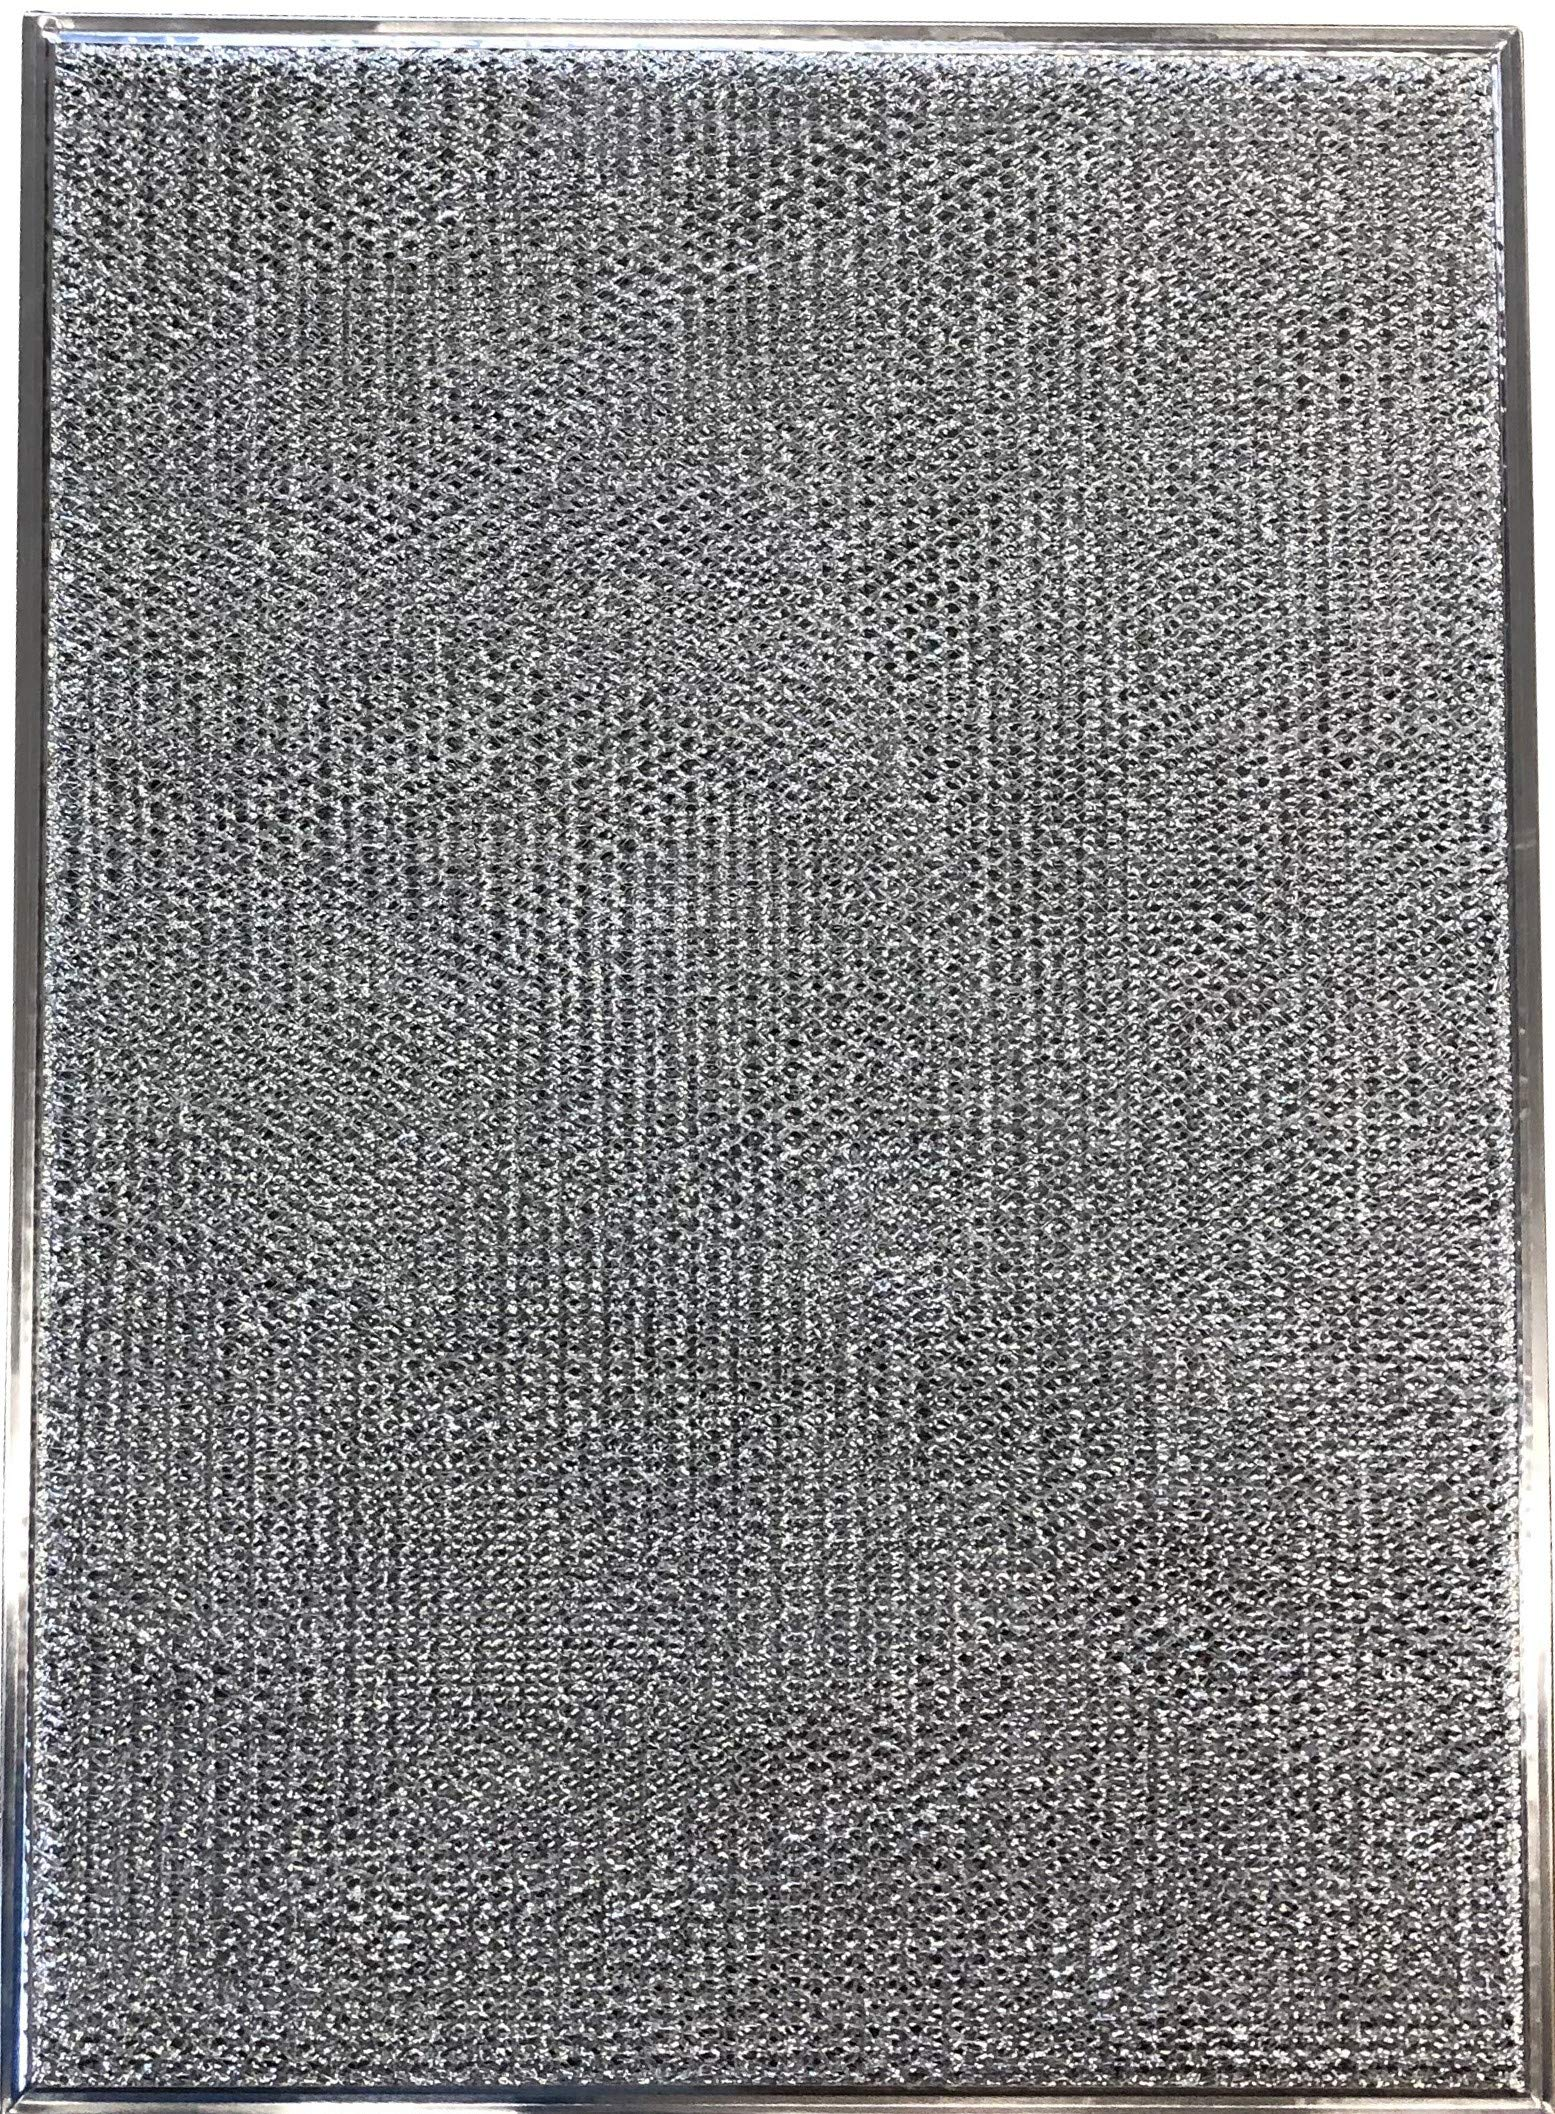 Replacement Aluminum Range Filter Compatible With Rangeaire 610021,G 8559,RHF1130   11 7/16 x 20 1/4